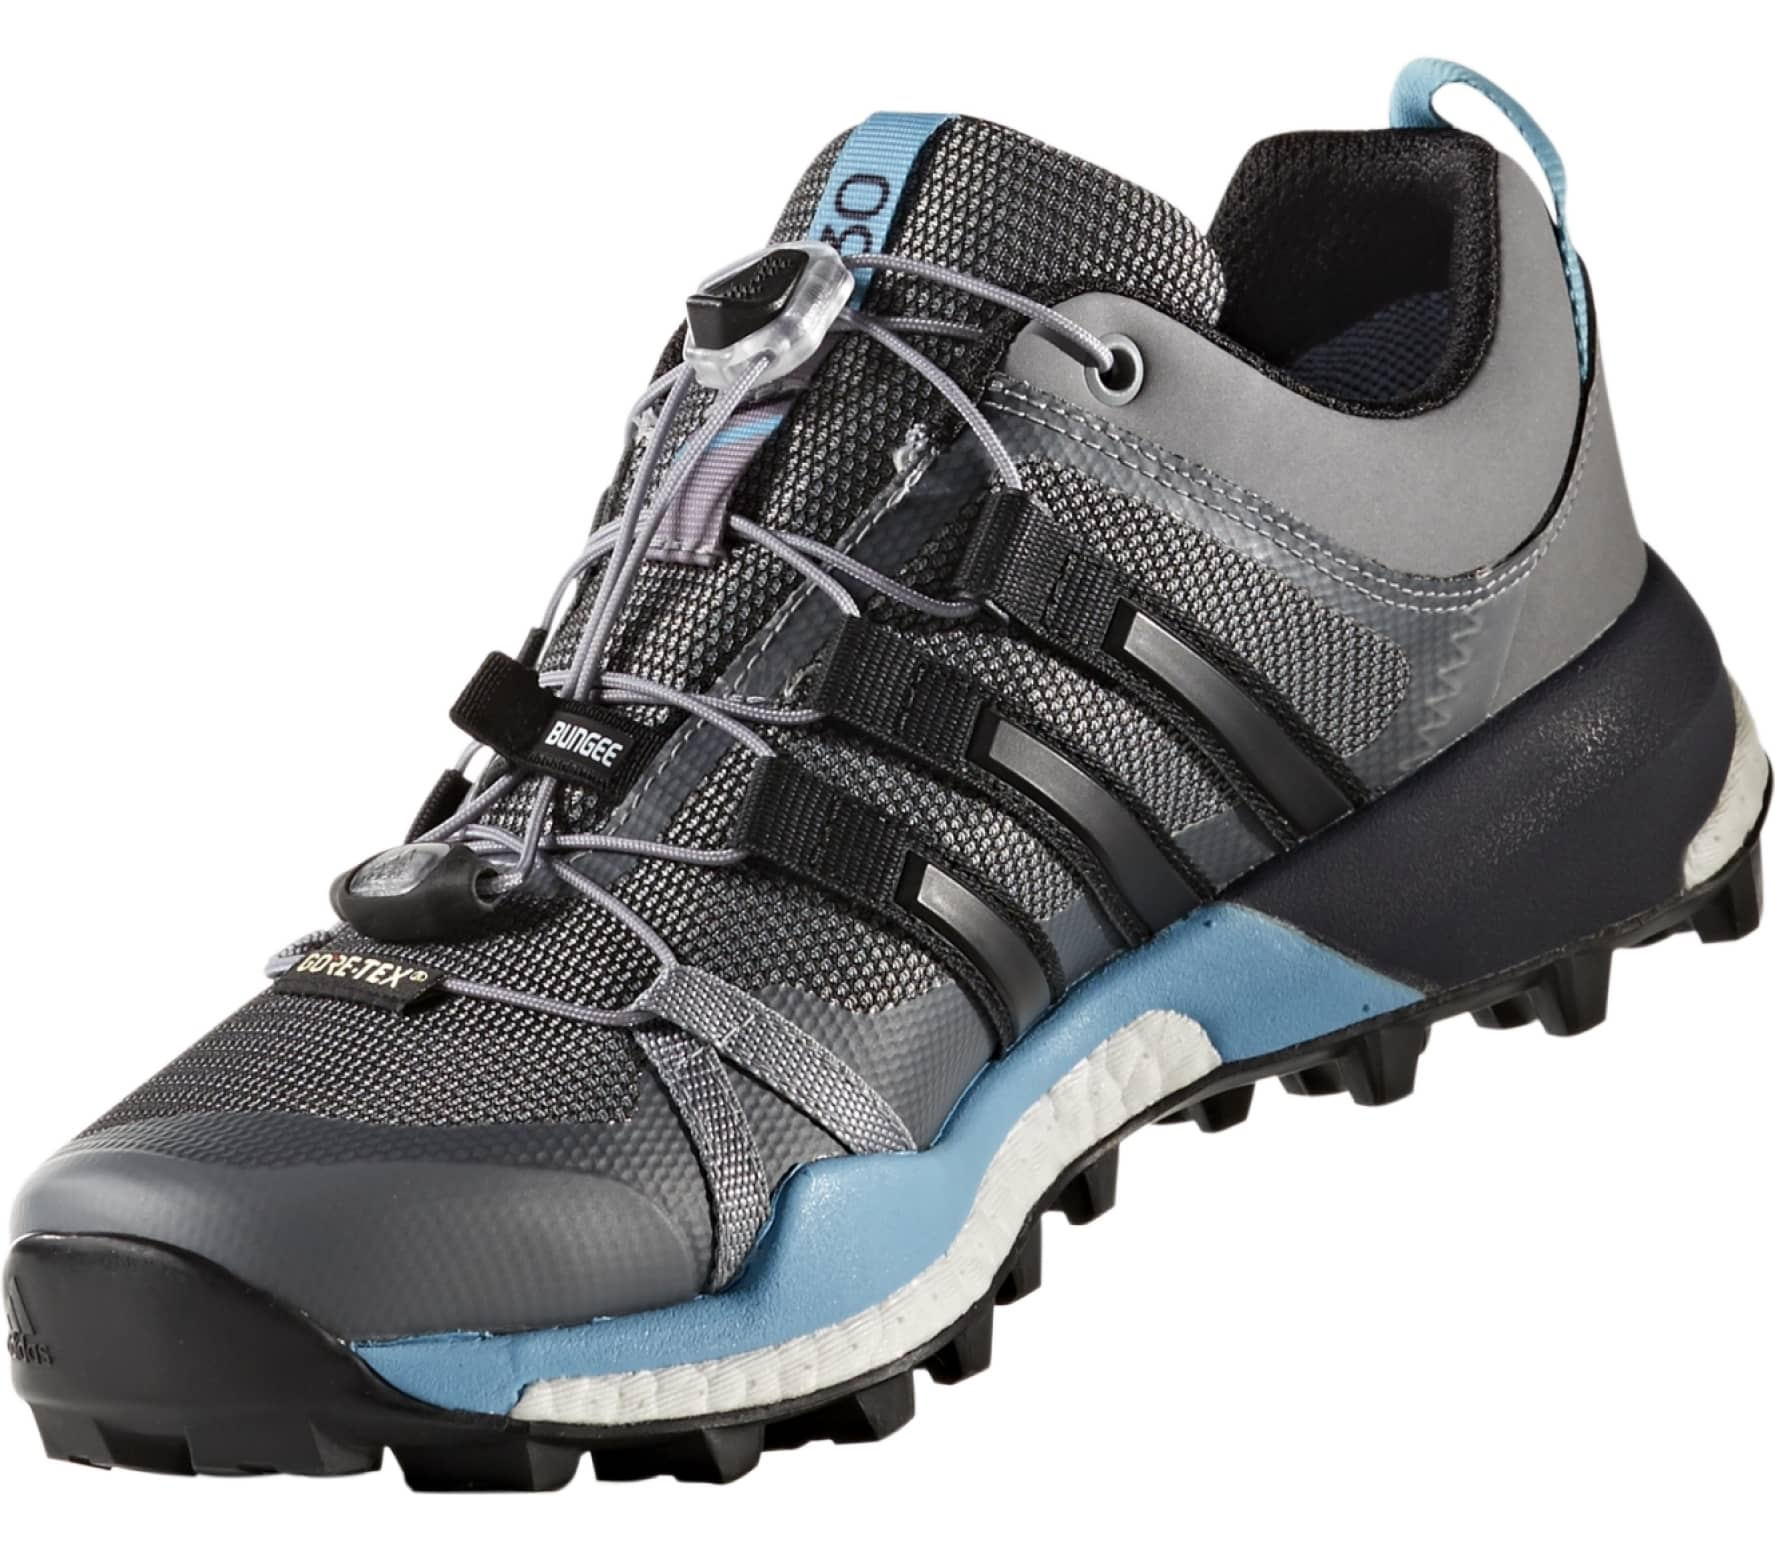 5ed1d221bf78 Adidas - Terrex Skychaser GTX women s trail running shoes (grey black)